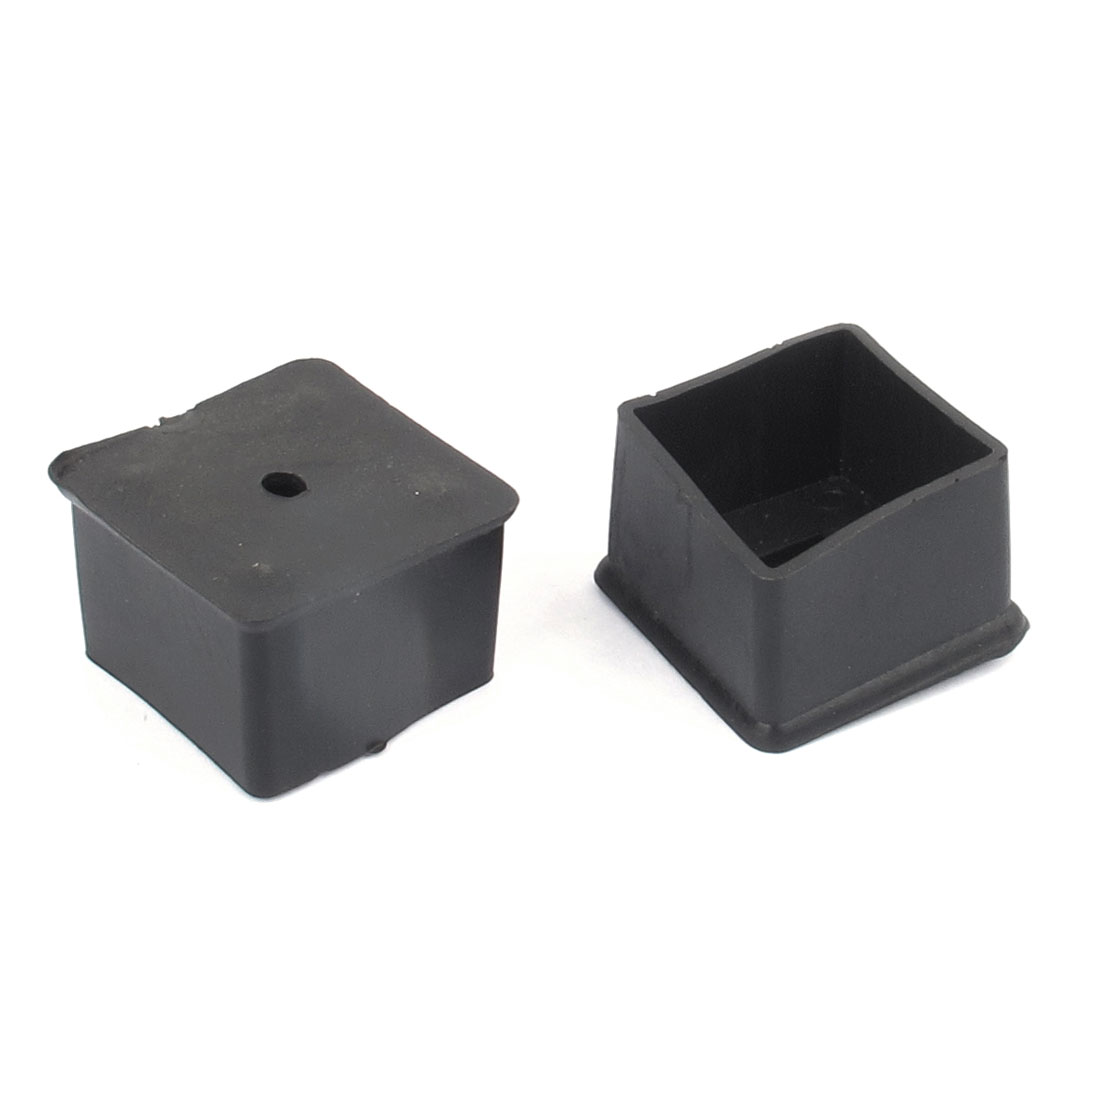 2pcs Rubber Square Shape Furniture Table Chair Foot Leg Cap Tip Pad Cover Protector